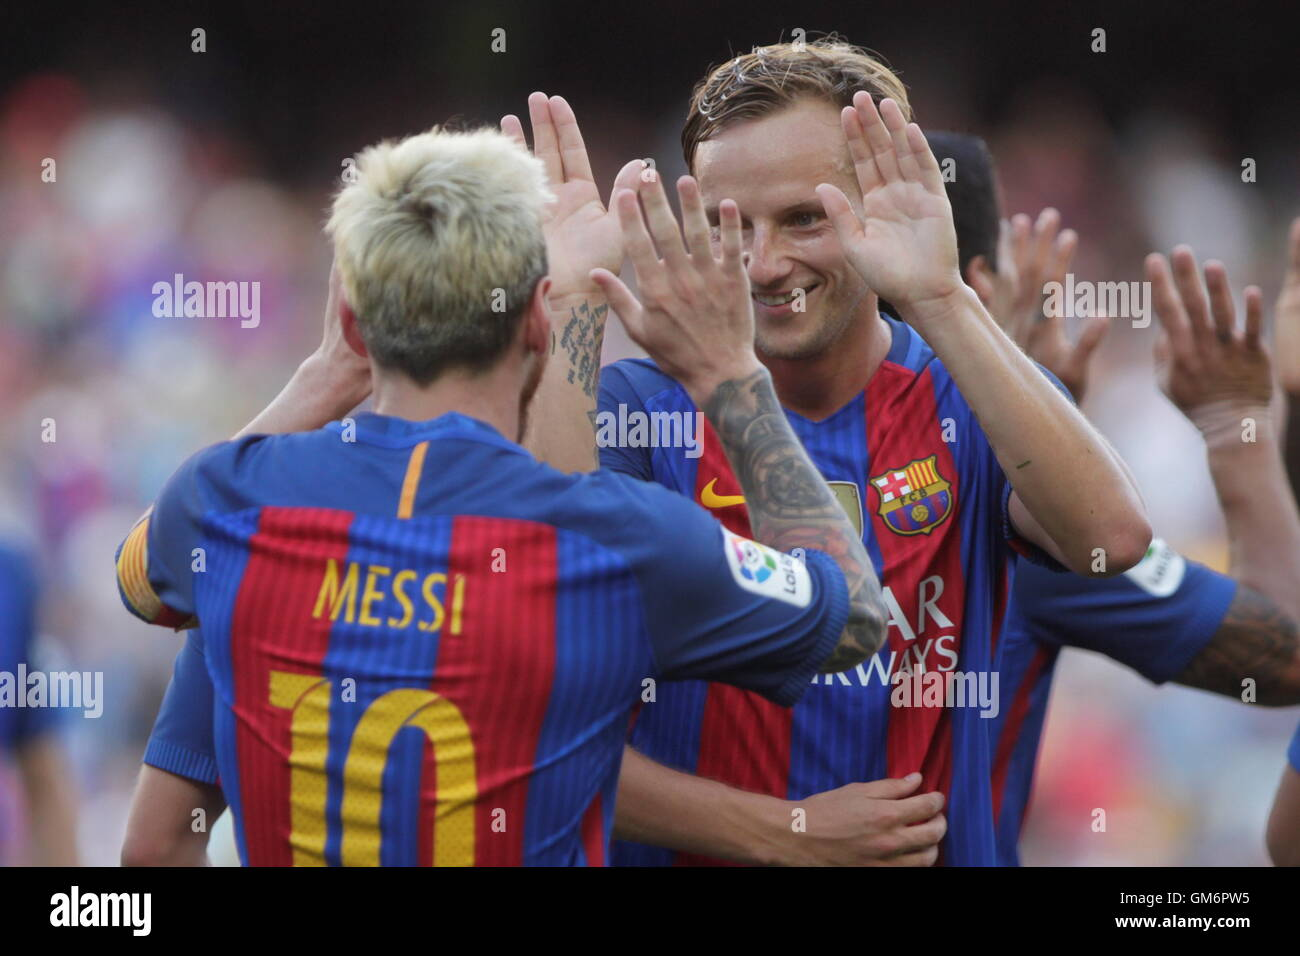 08/20/2016. Camp Nou, Barcelona, Espagne. Lionel Messi célébration but lors du match FC Barcelone Liga Photo Stock